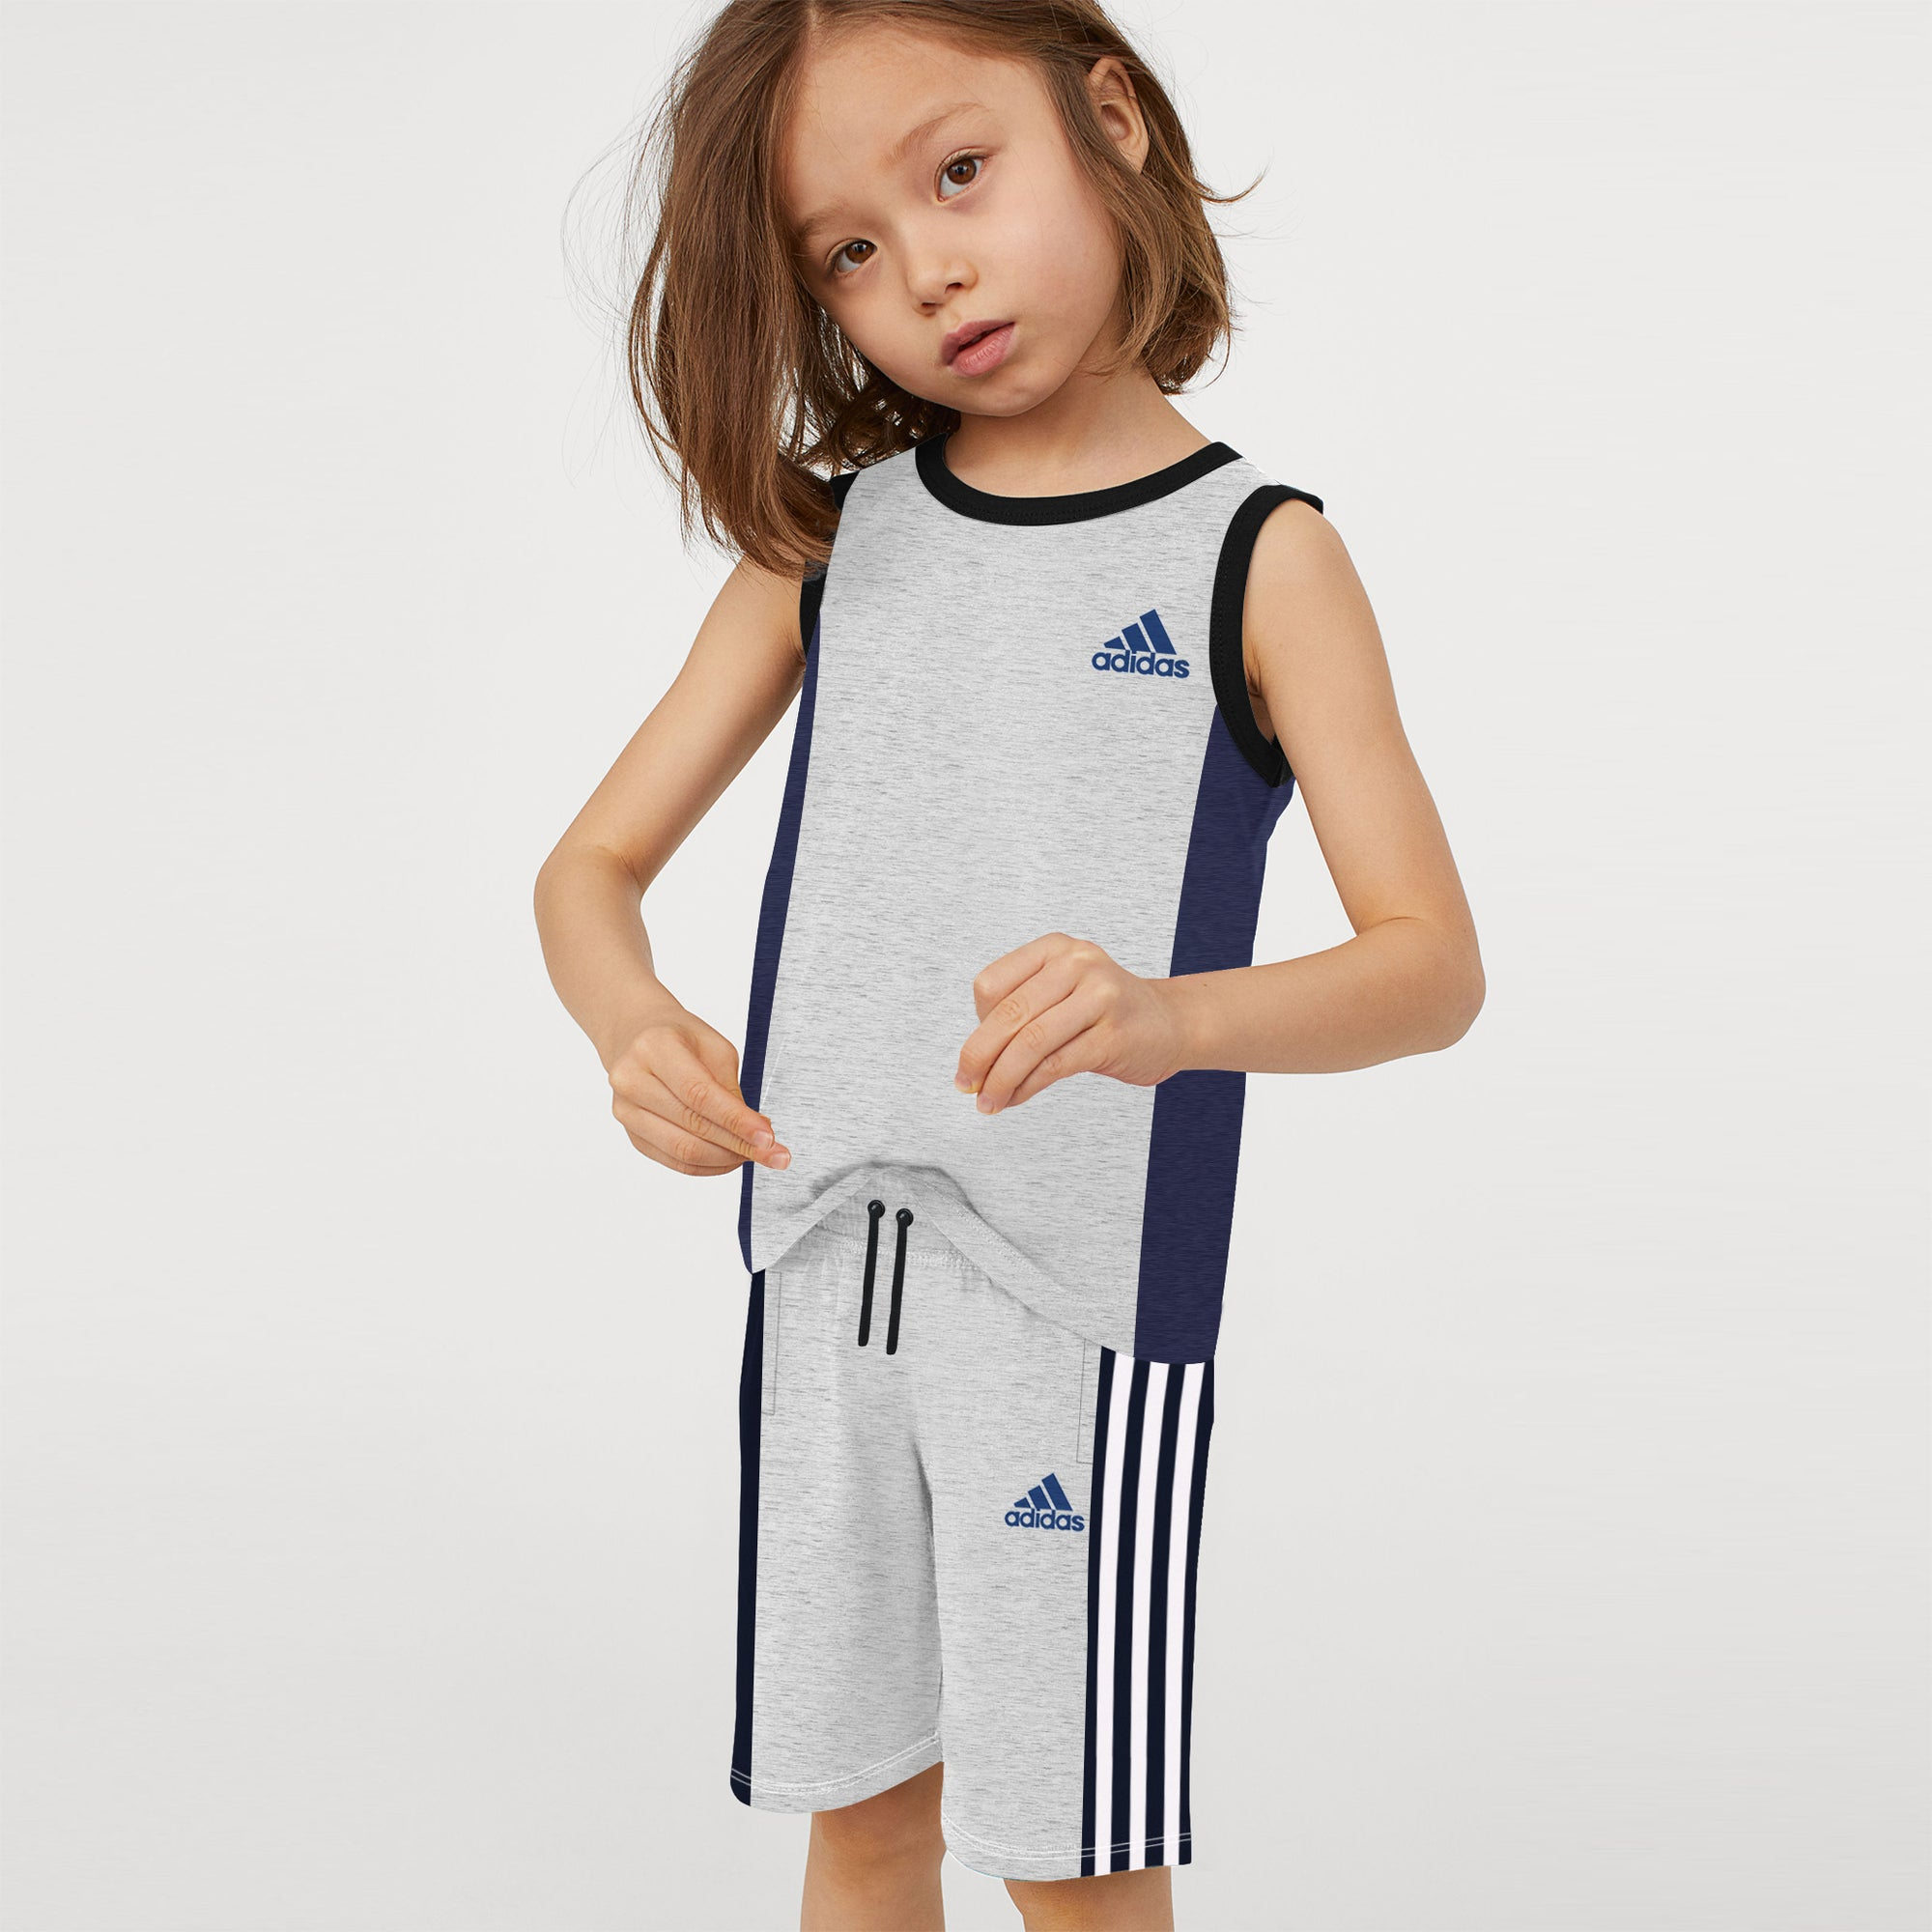 Adidas Single Jersey Sport Suit For Kids-Grey & Purple Melange with White Stripe-BE9437